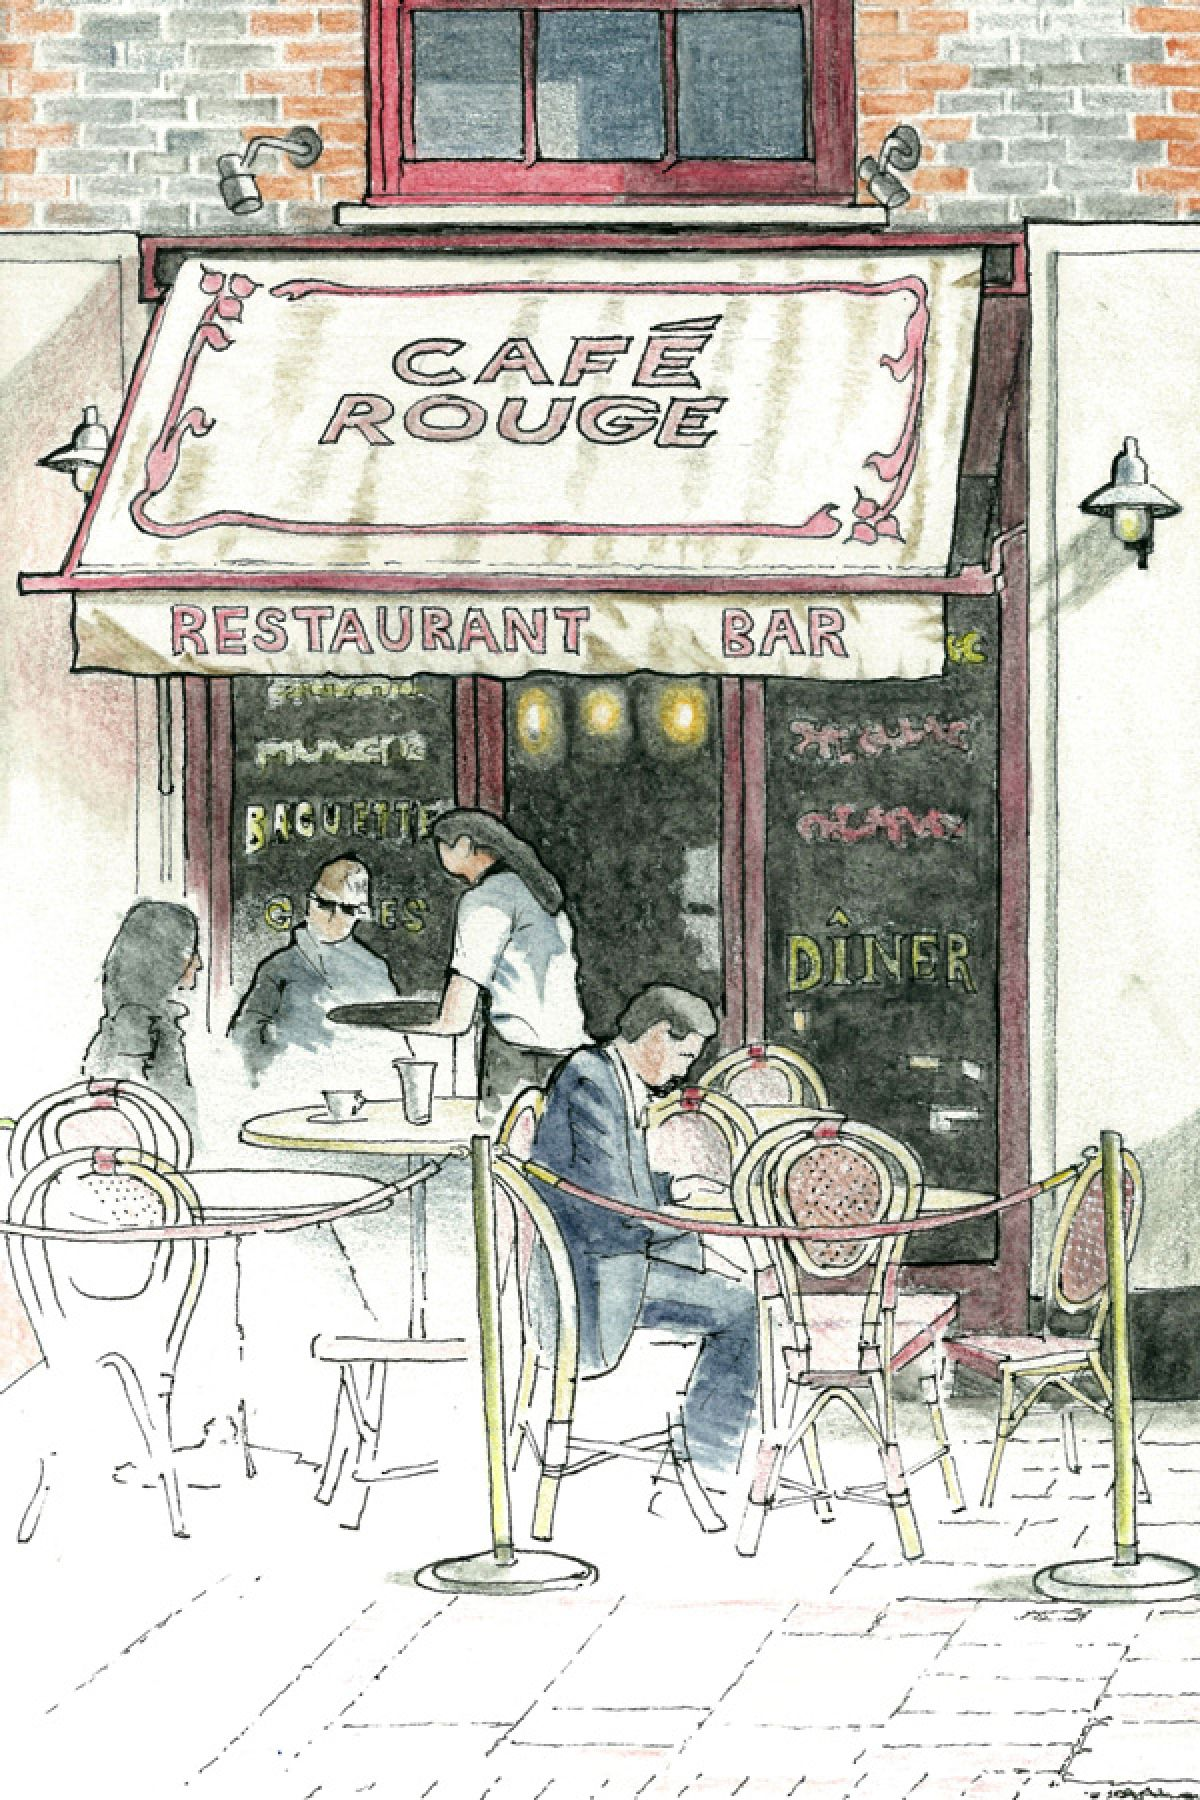 Cafes, Pubs and Restaurants